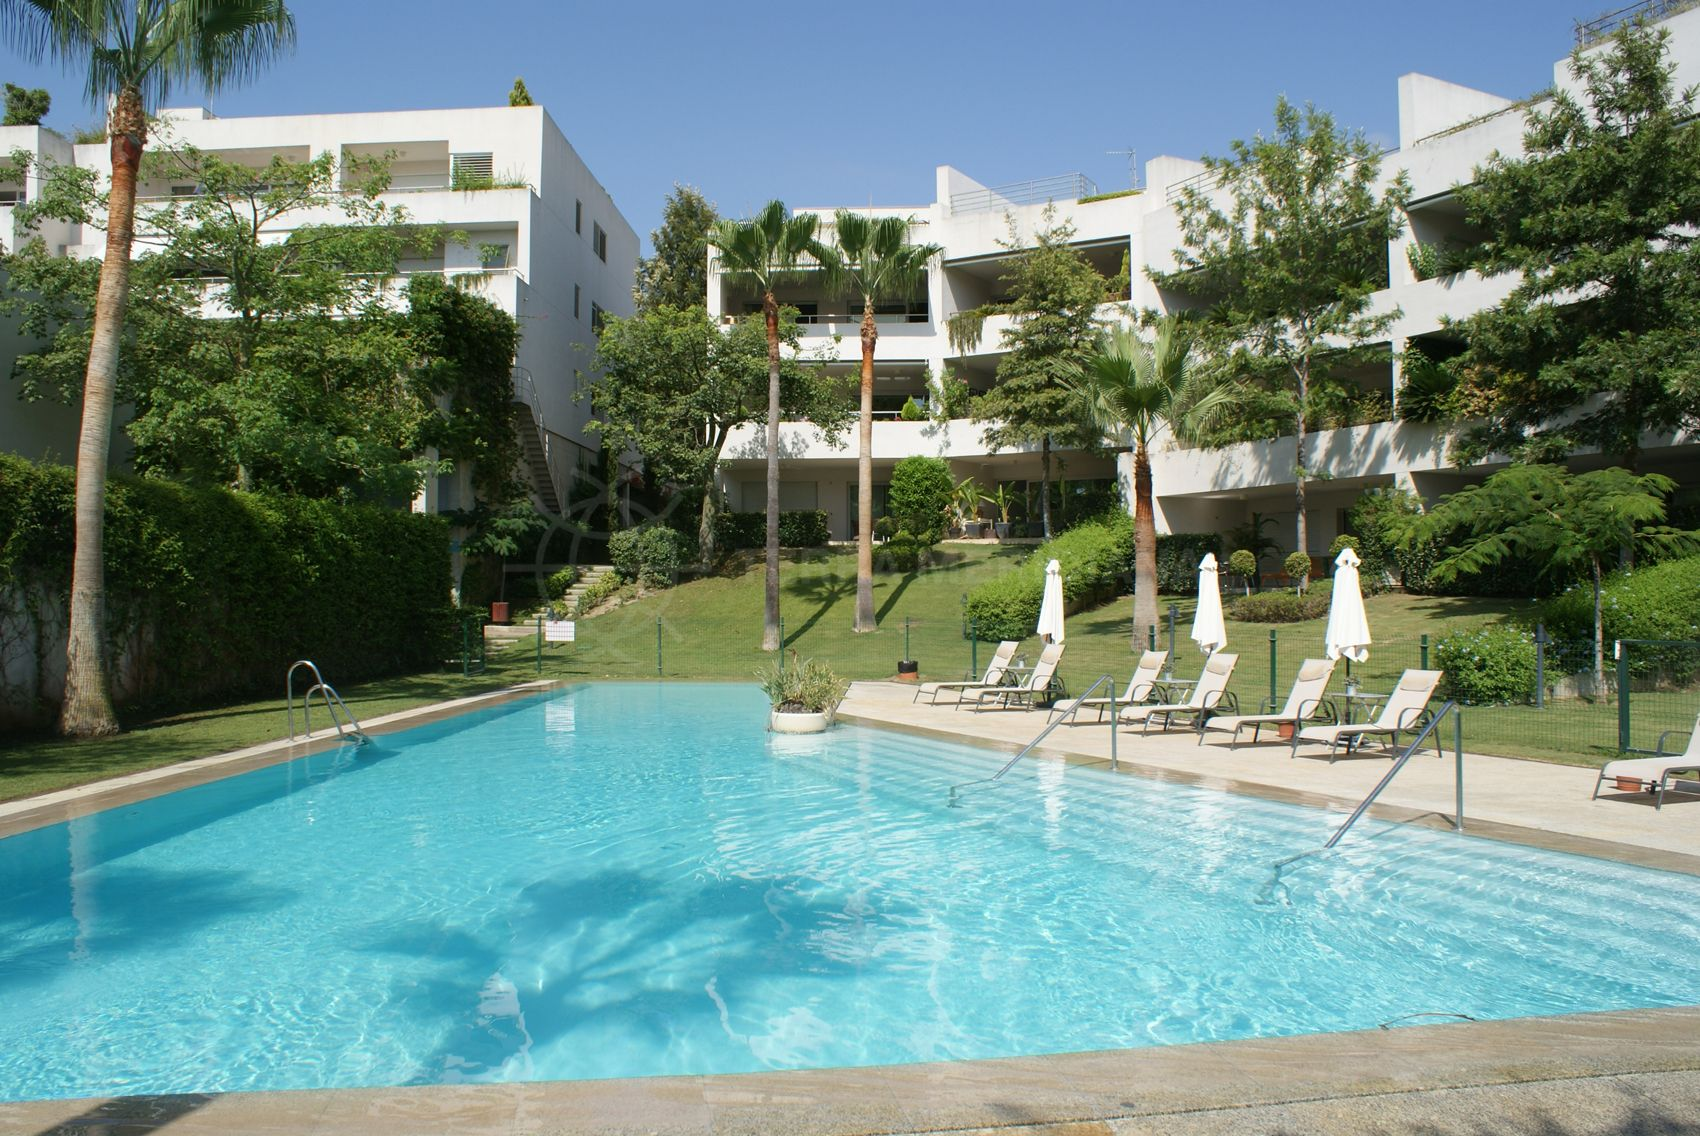 Southeast facing first floor apartment for sale in polo gardens sotogrande with communal - Polo gardens sotogrande ...